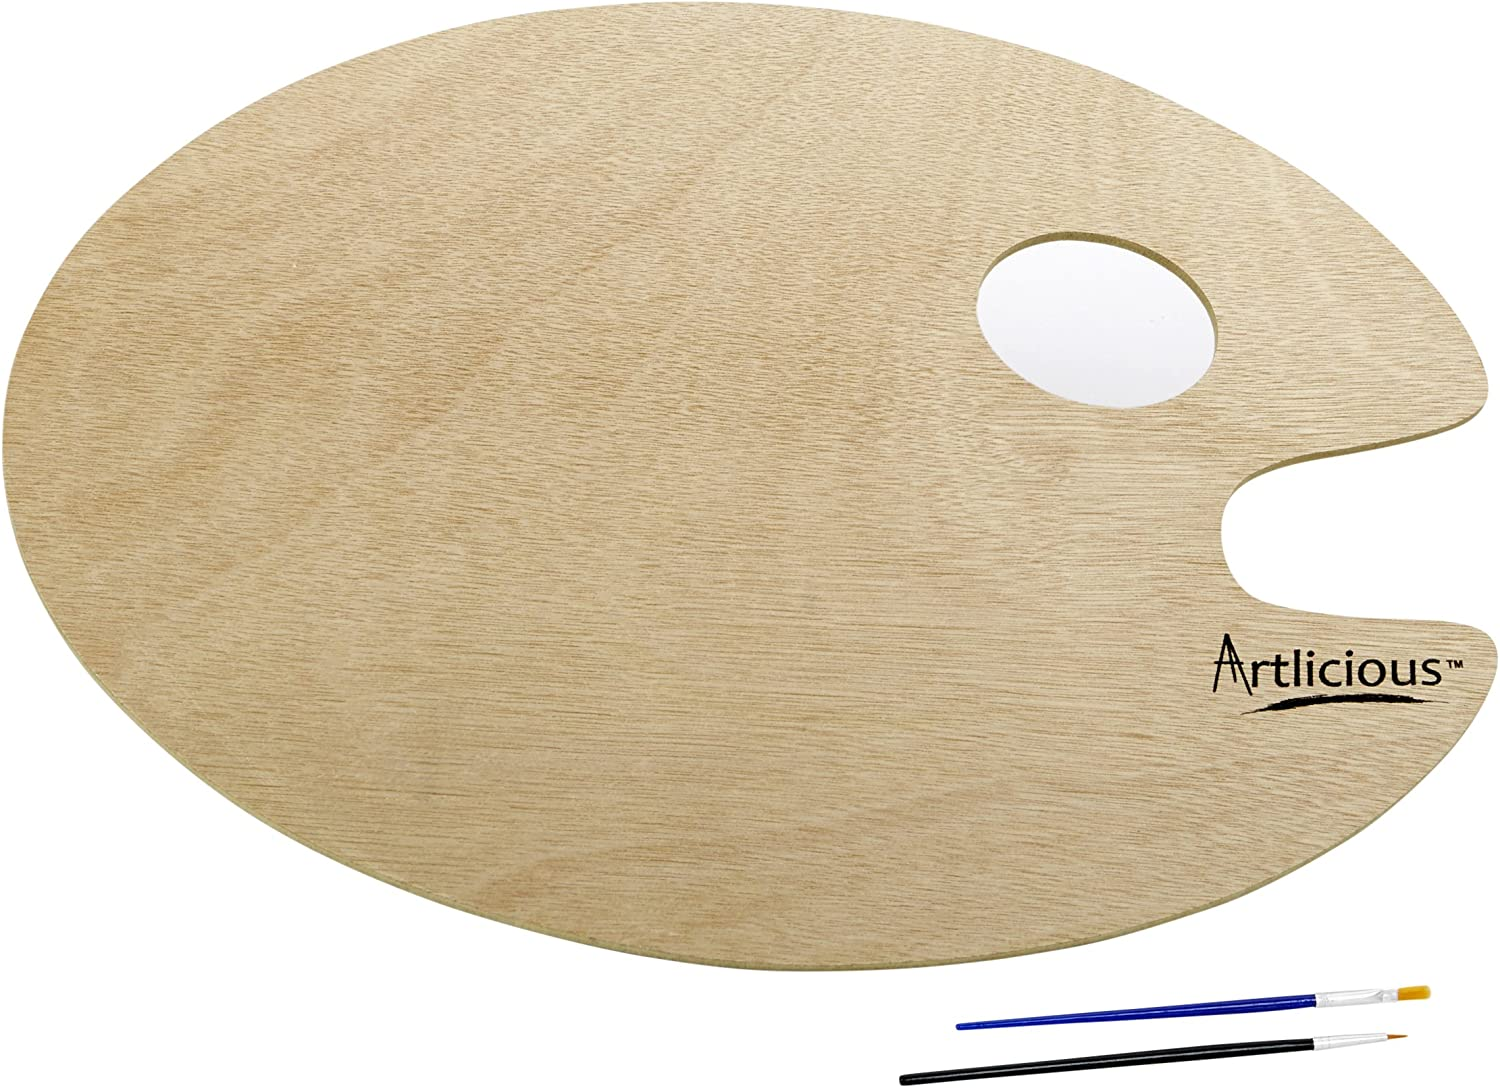 Artlicious - Over-Sized Oval Shaped Wooden Palette 11.75 inch x 15.75 inch - Use with Acrylic, Watercolor, Oil Paints & Brushes